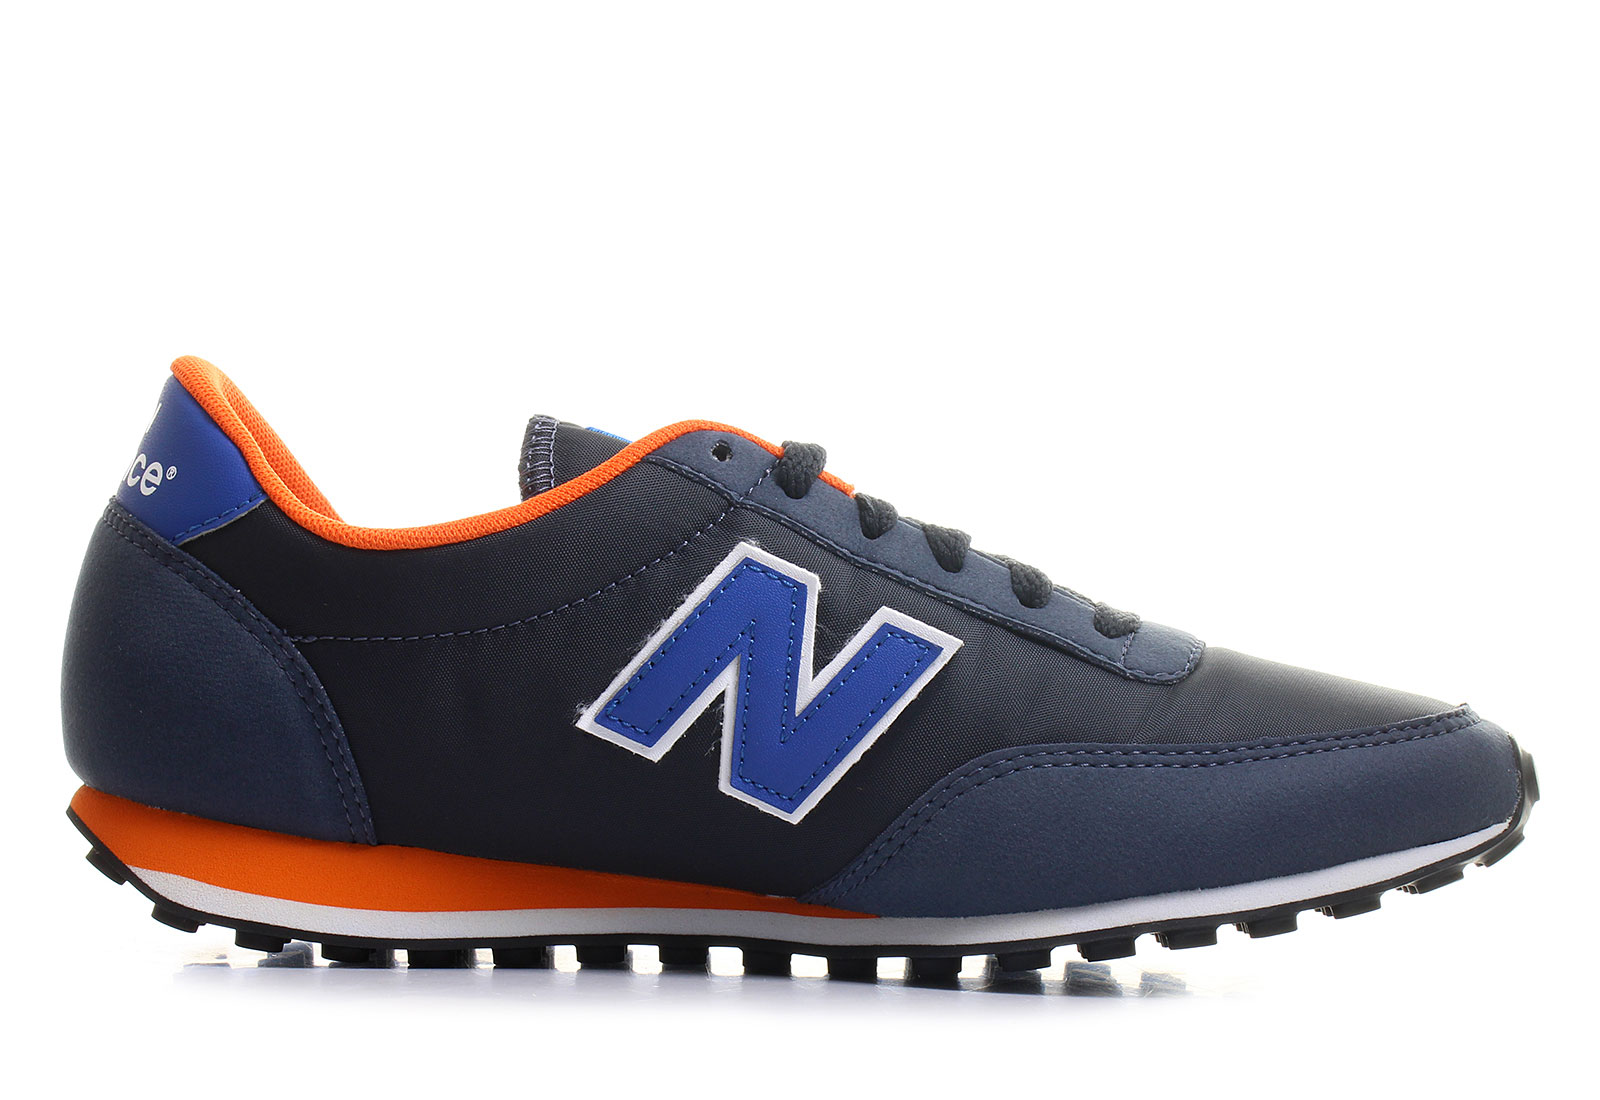 new balance shoes u410 u410bby online shop for sneakers shoes and boots. Black Bedroom Furniture Sets. Home Design Ideas